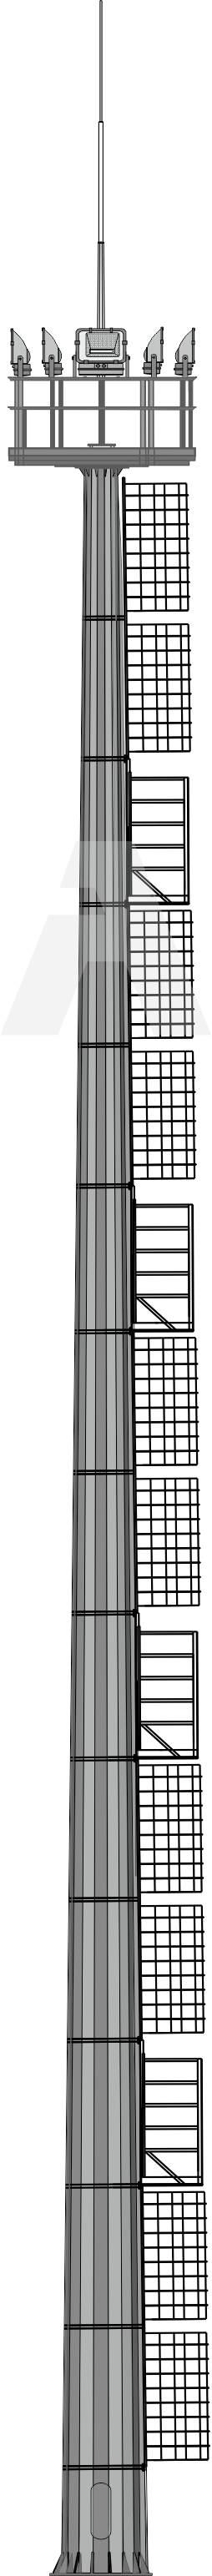 Lightning diverters based on high lighting masts with stationary service area (VGN)